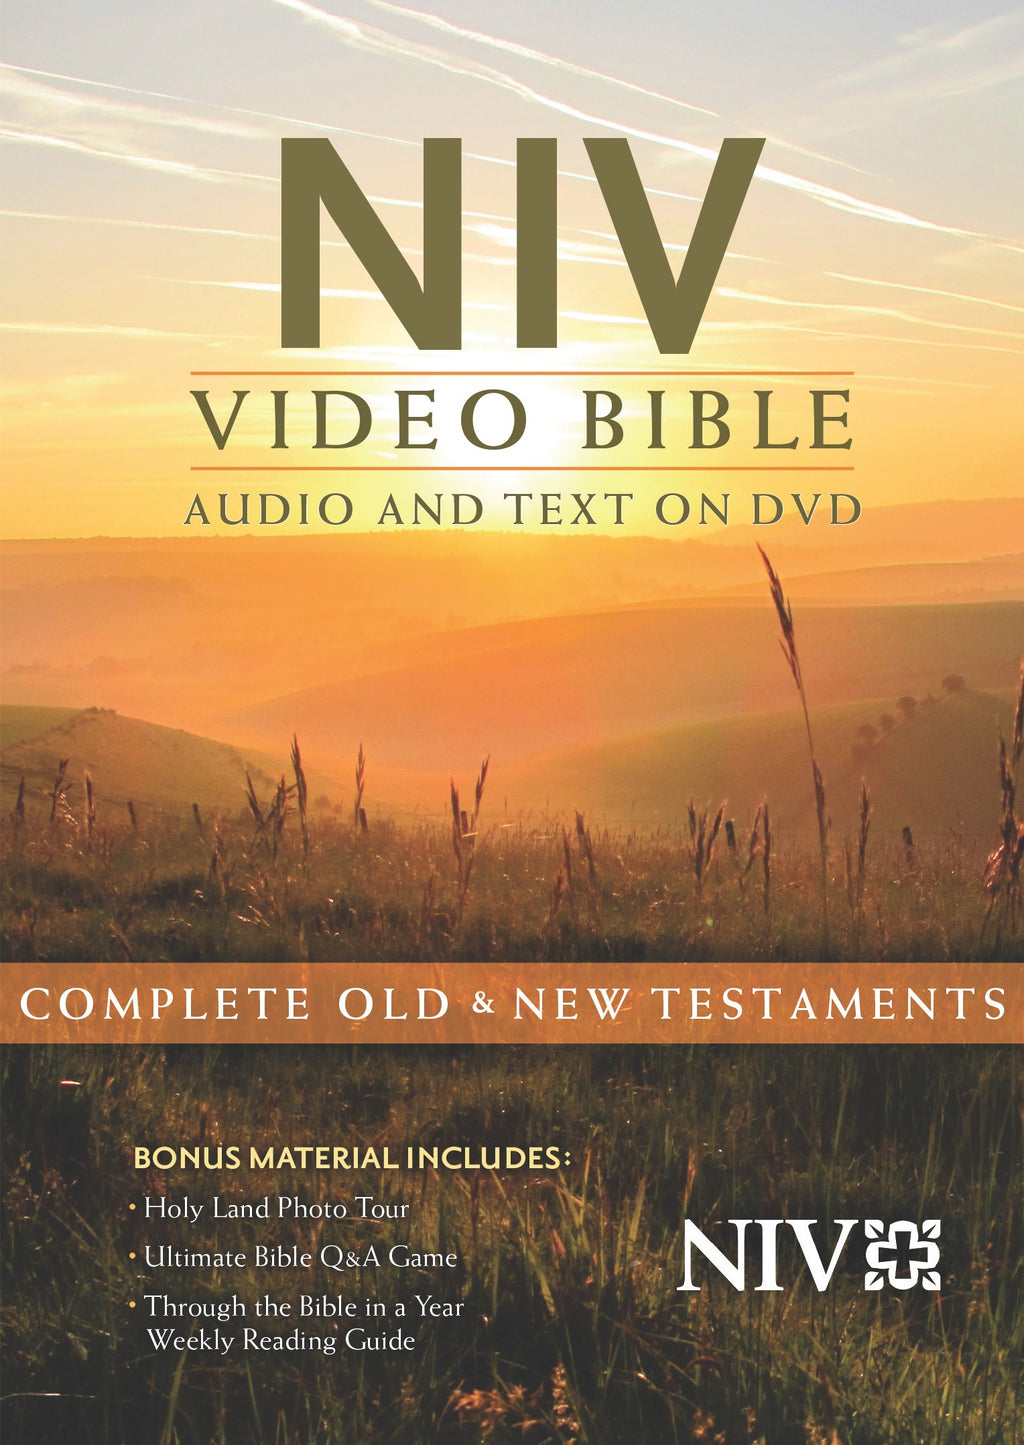 NIV Video Bible: Audio And Text On DVD (Dramatized) (Value Price)